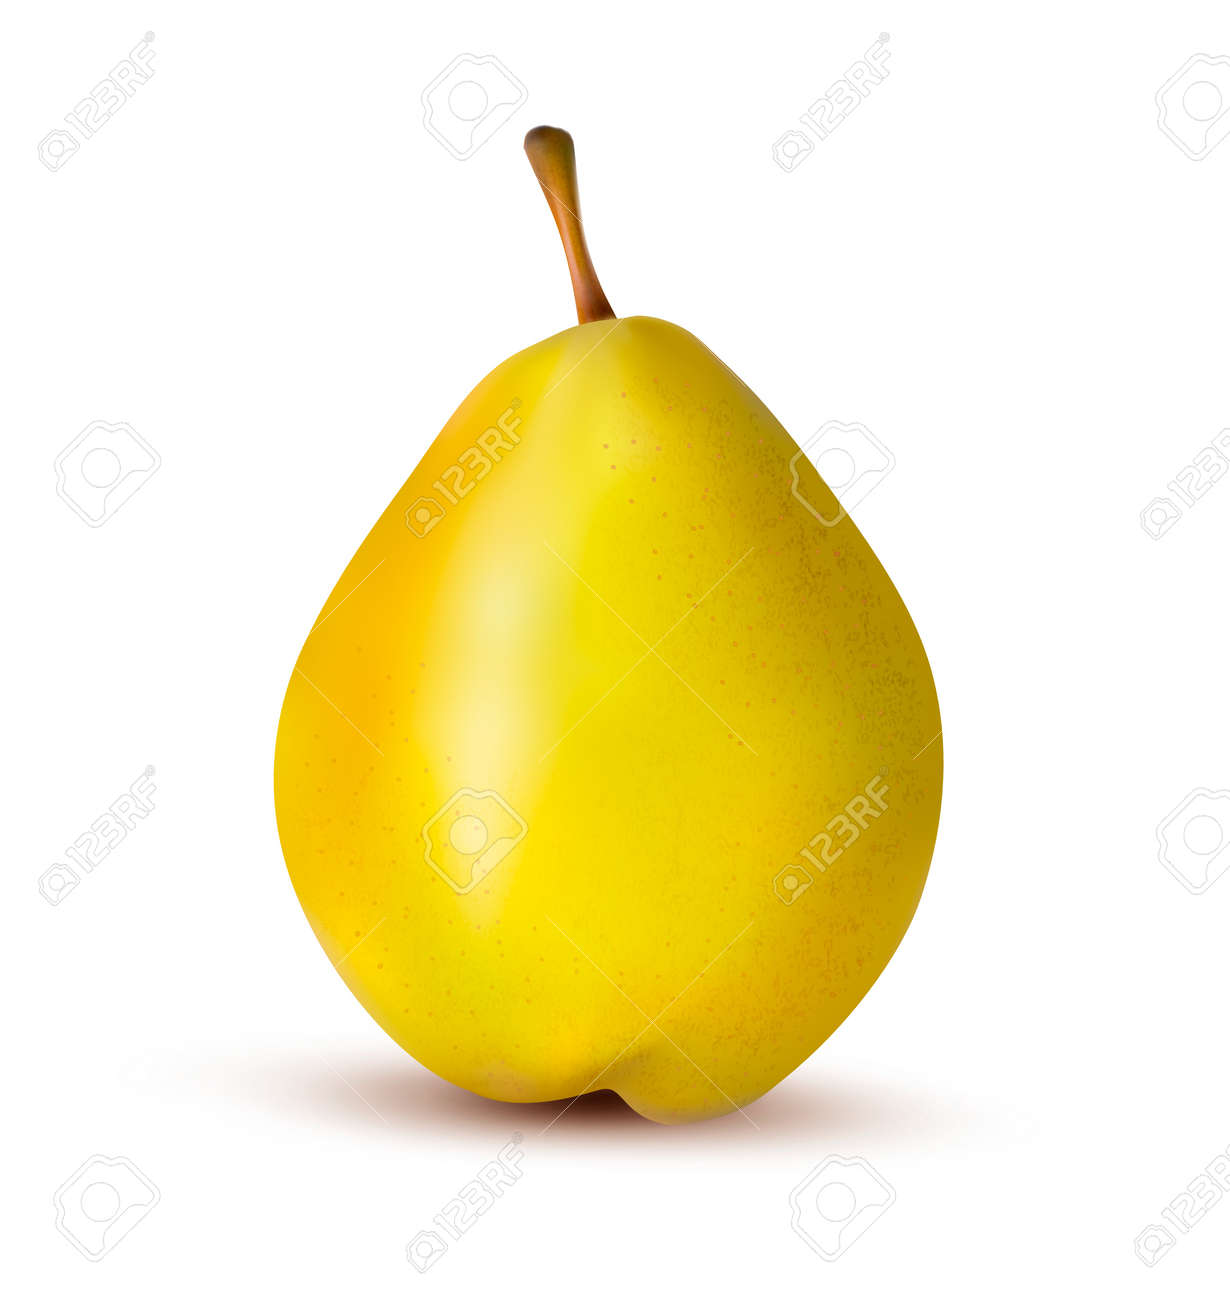 Rpe pear isolated on white. Stock Vector - 16915189